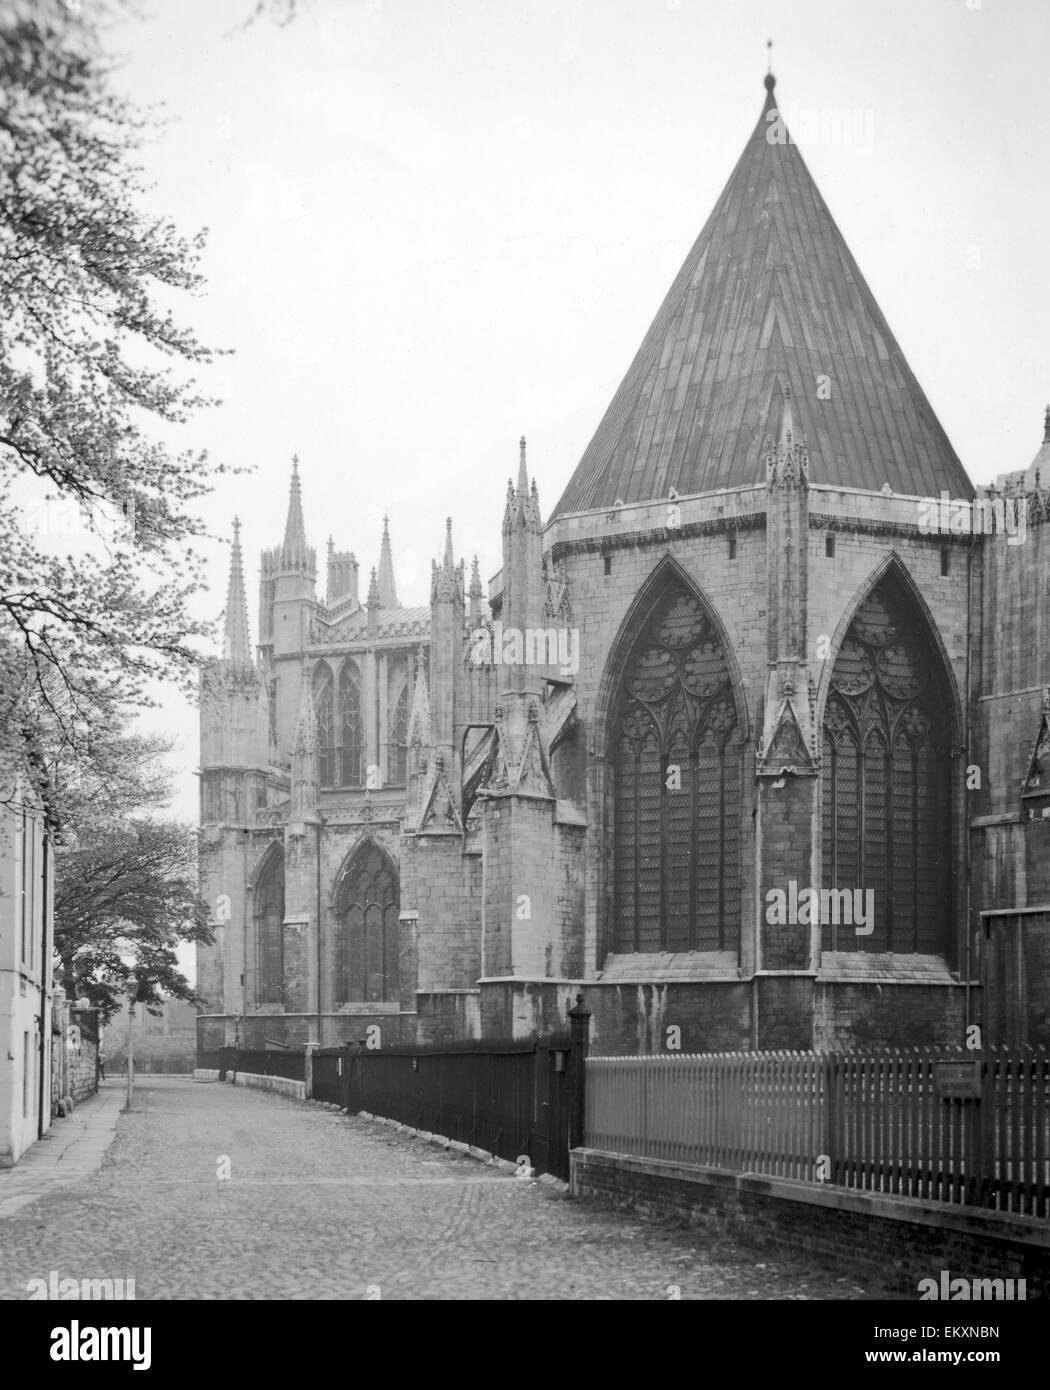 York Minster is a Gothic cathedral in York, England and is one of the largest of its kind in Northern Europel. The - Stock Image